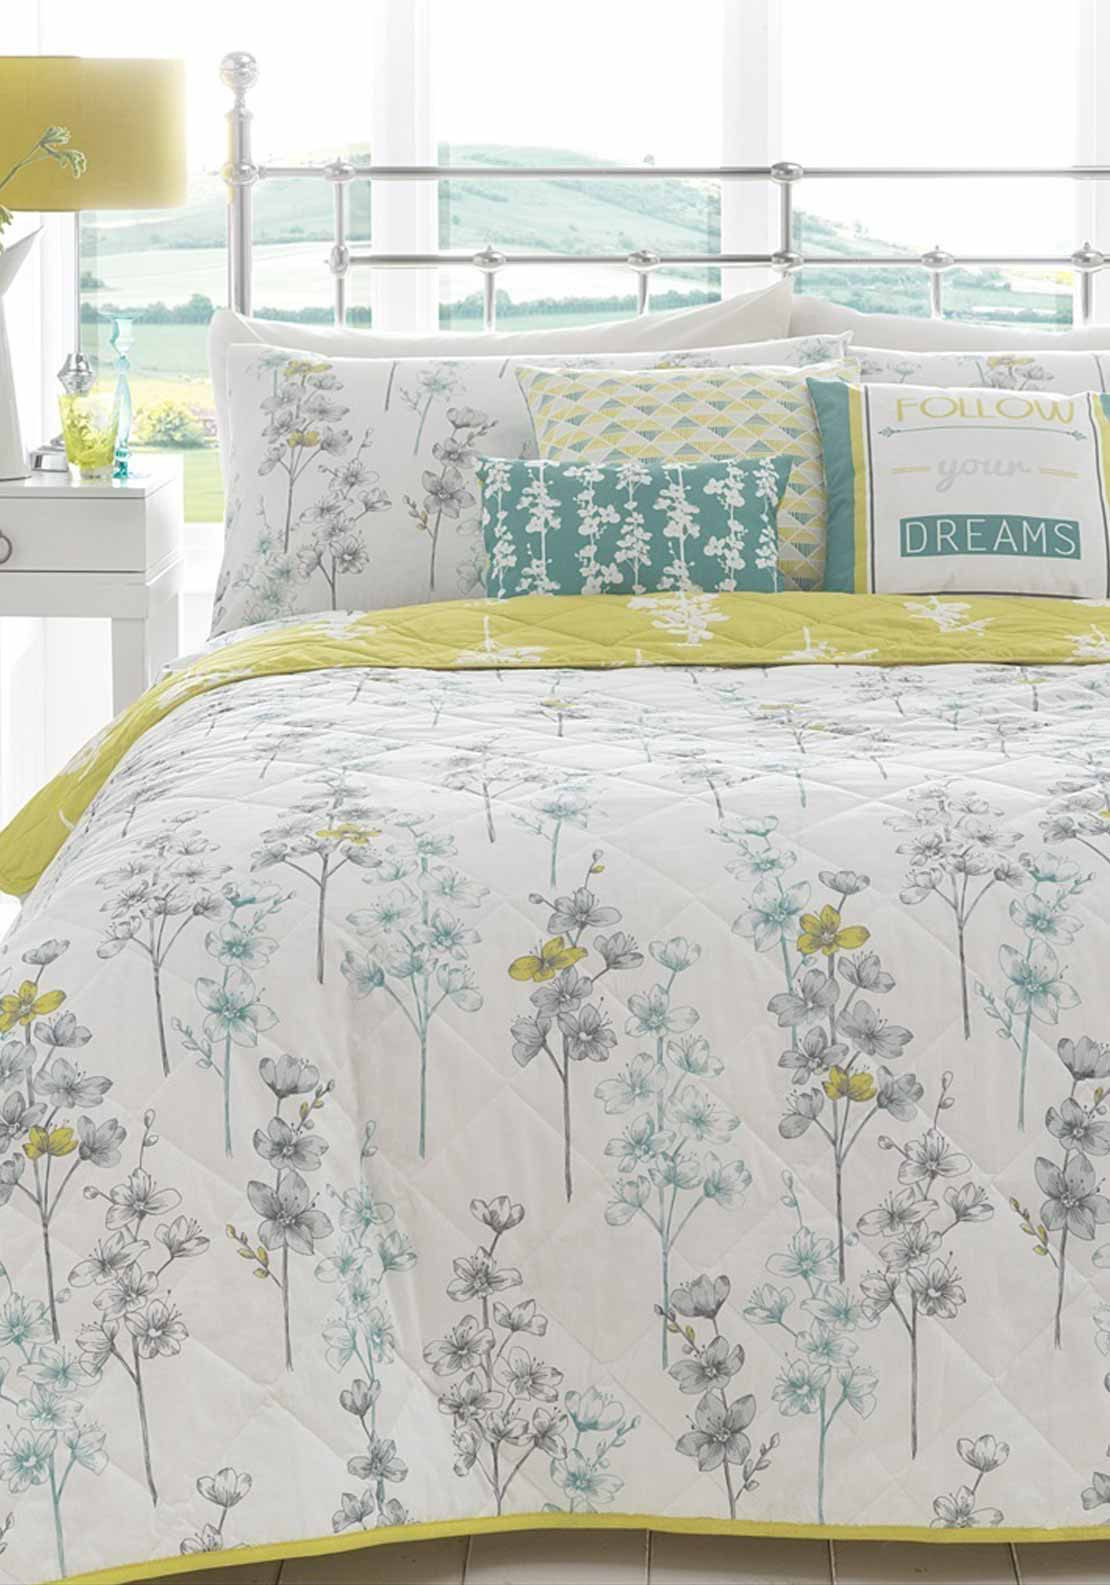 Appletree Blossom Stems Duvet Cover Set